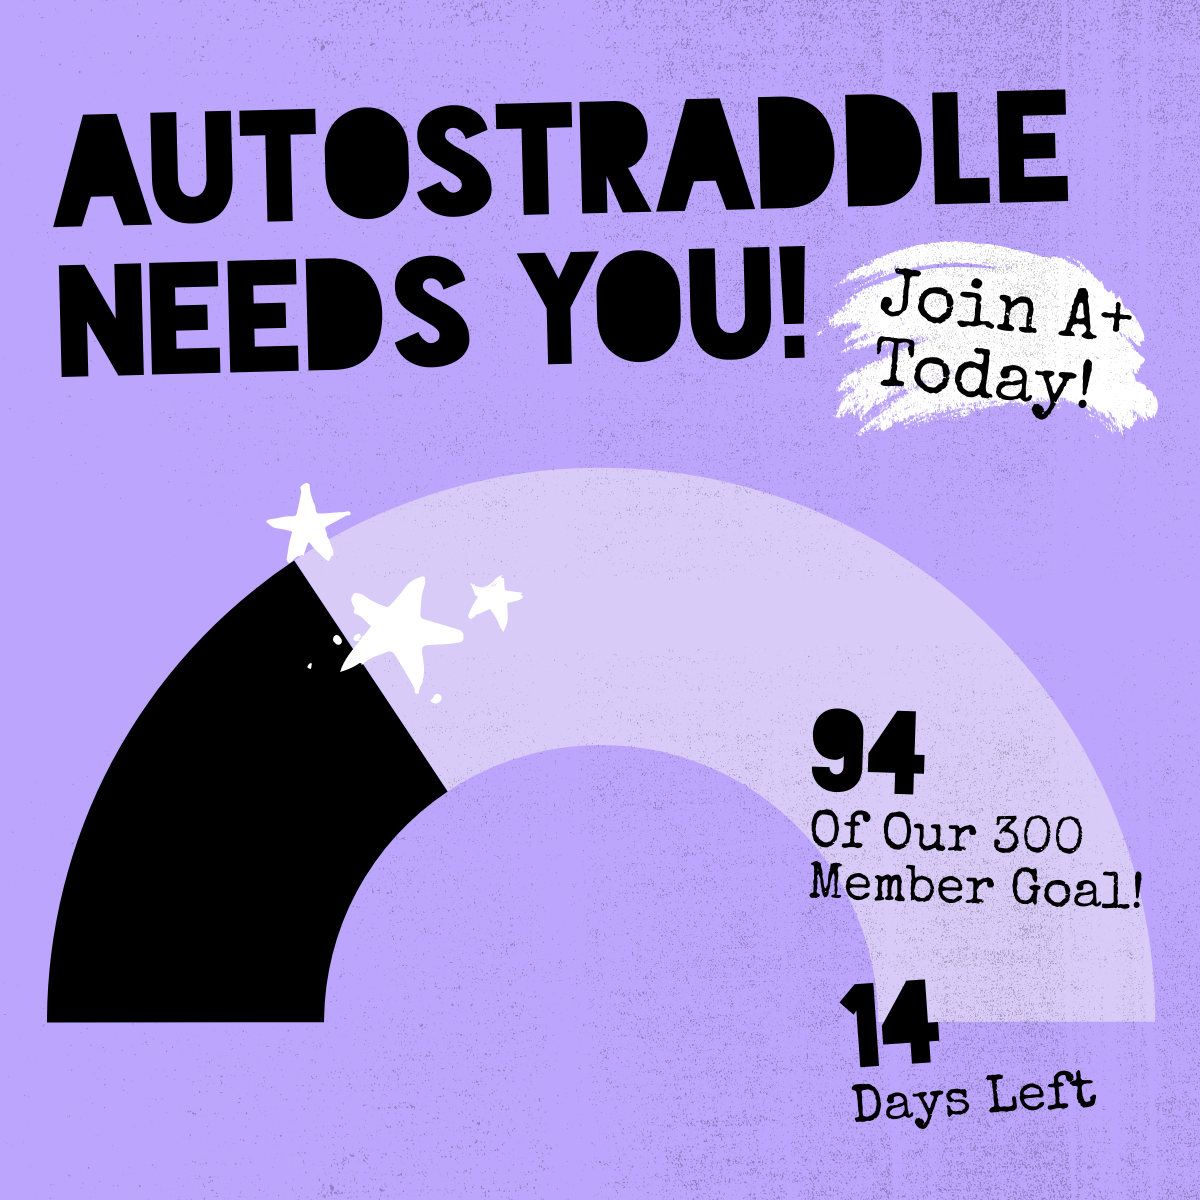 Autostraddle Needs You! Join A+ Today! 94 of our 300 member goal! 14 days left